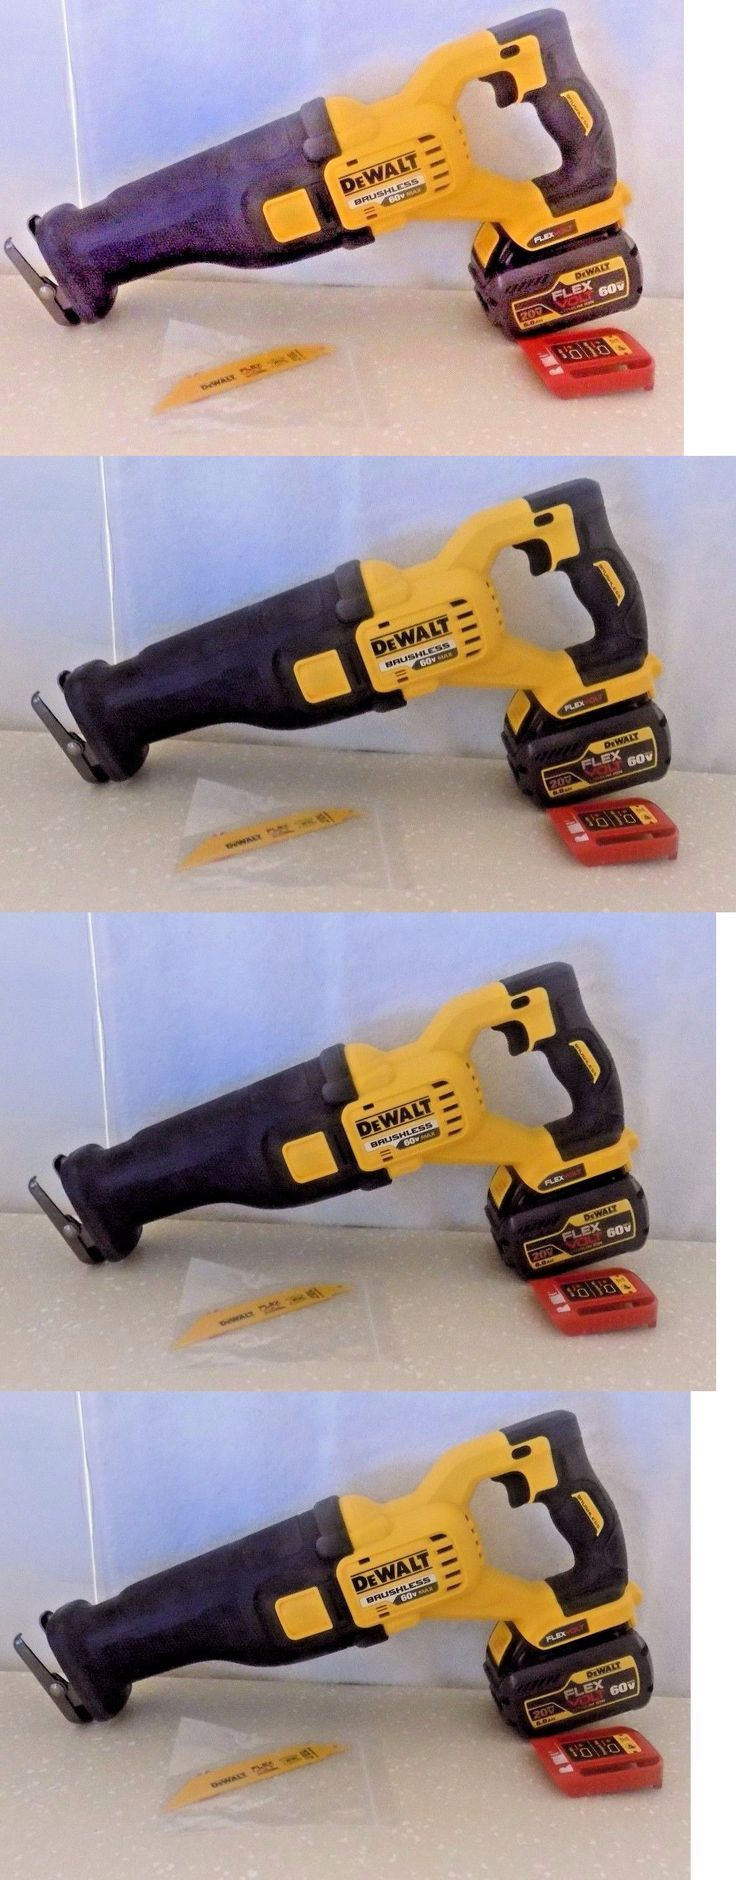 Reciprocating Saws 20788: Dewalt Dcs388b W One Dcb606 20 60V Max Reciprocating Saw And Blade -> BUY IT NOW ONLY: $199.99 on eBay!